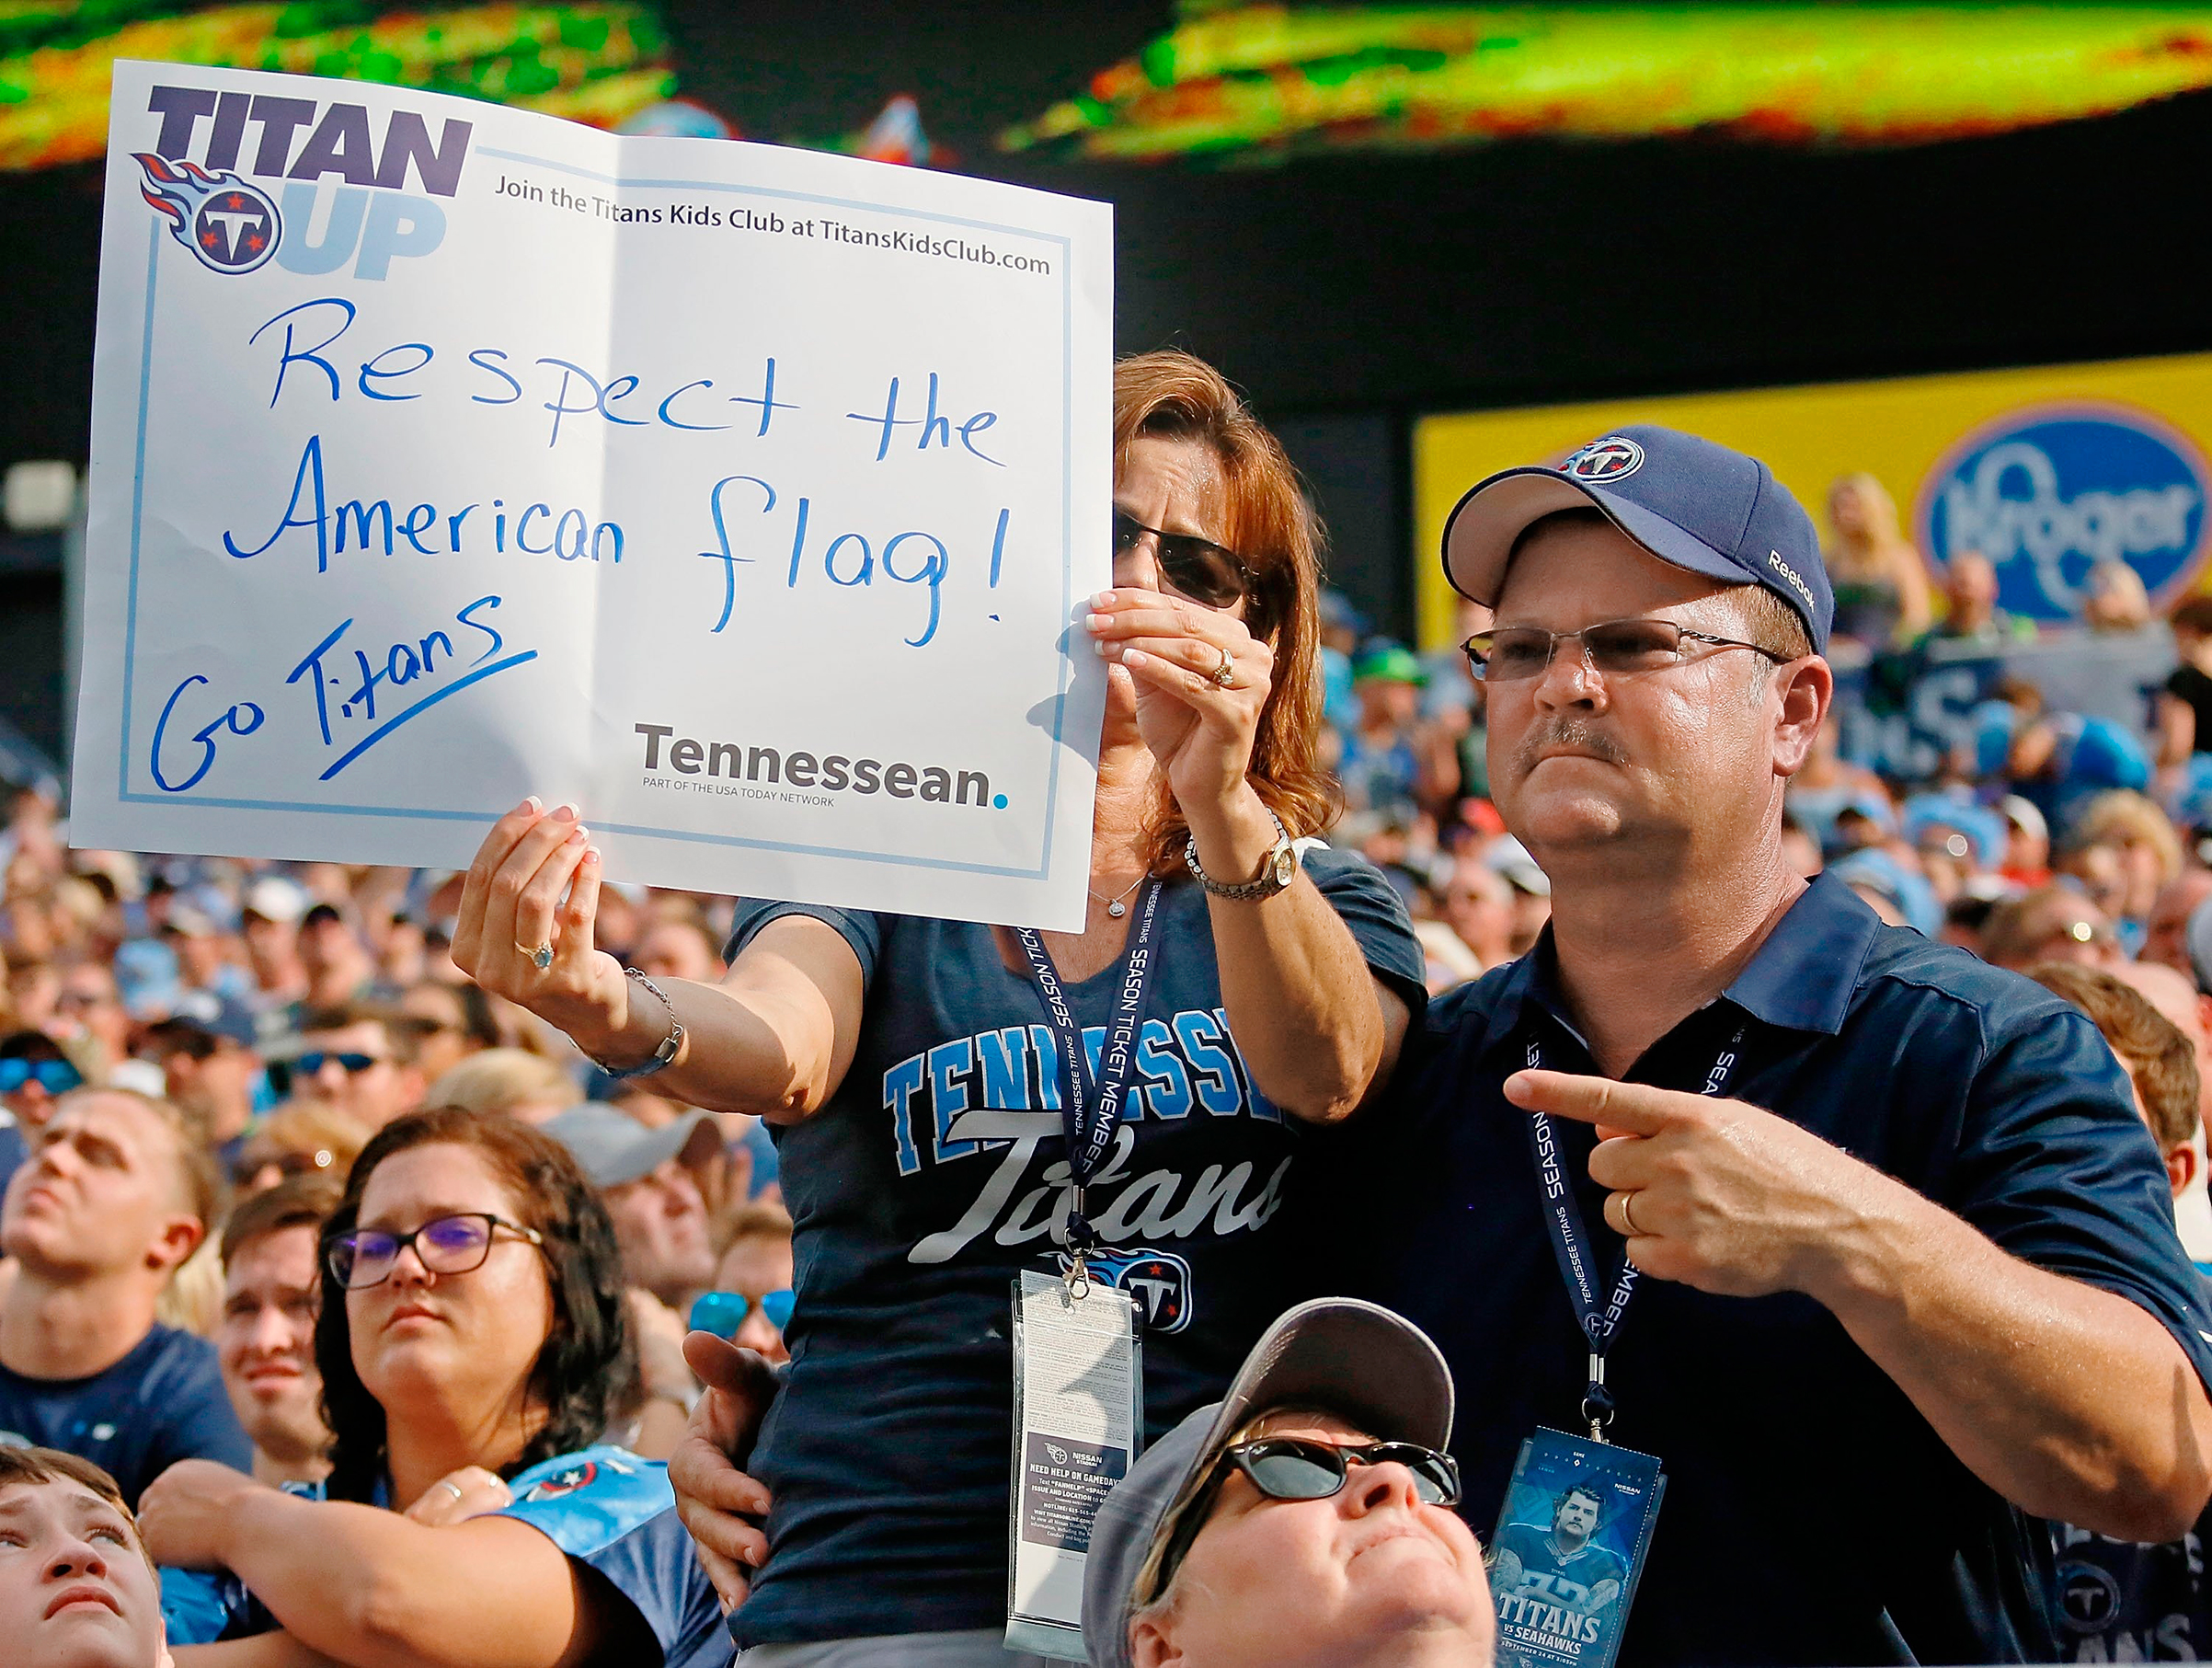 A Tennessee Titans fan hoists a sign during a game against the Seattle Seahawks in Nashville on Sept. 24